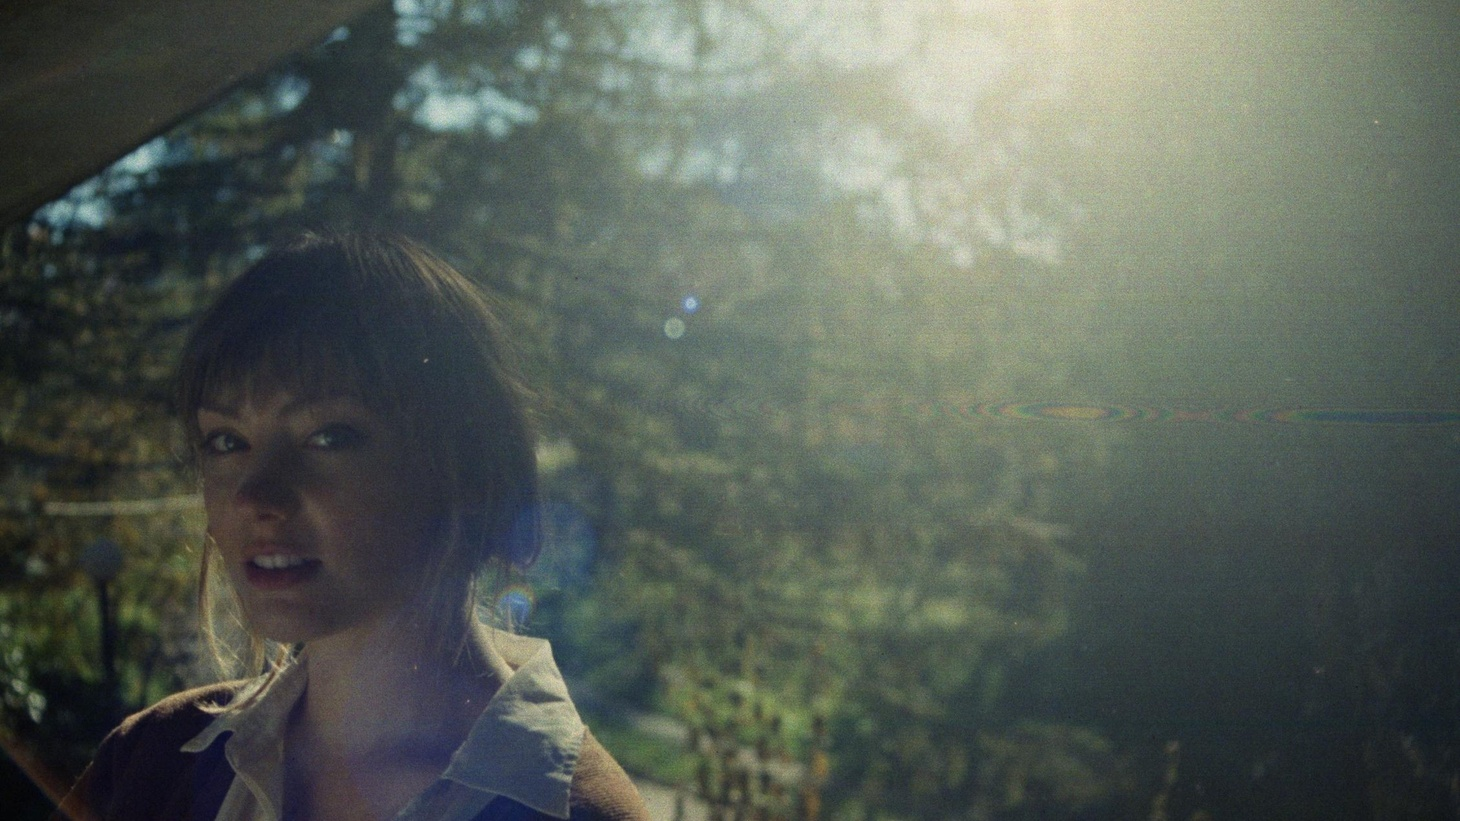 Angel Olsen has made an unforgettable and entrancing record.